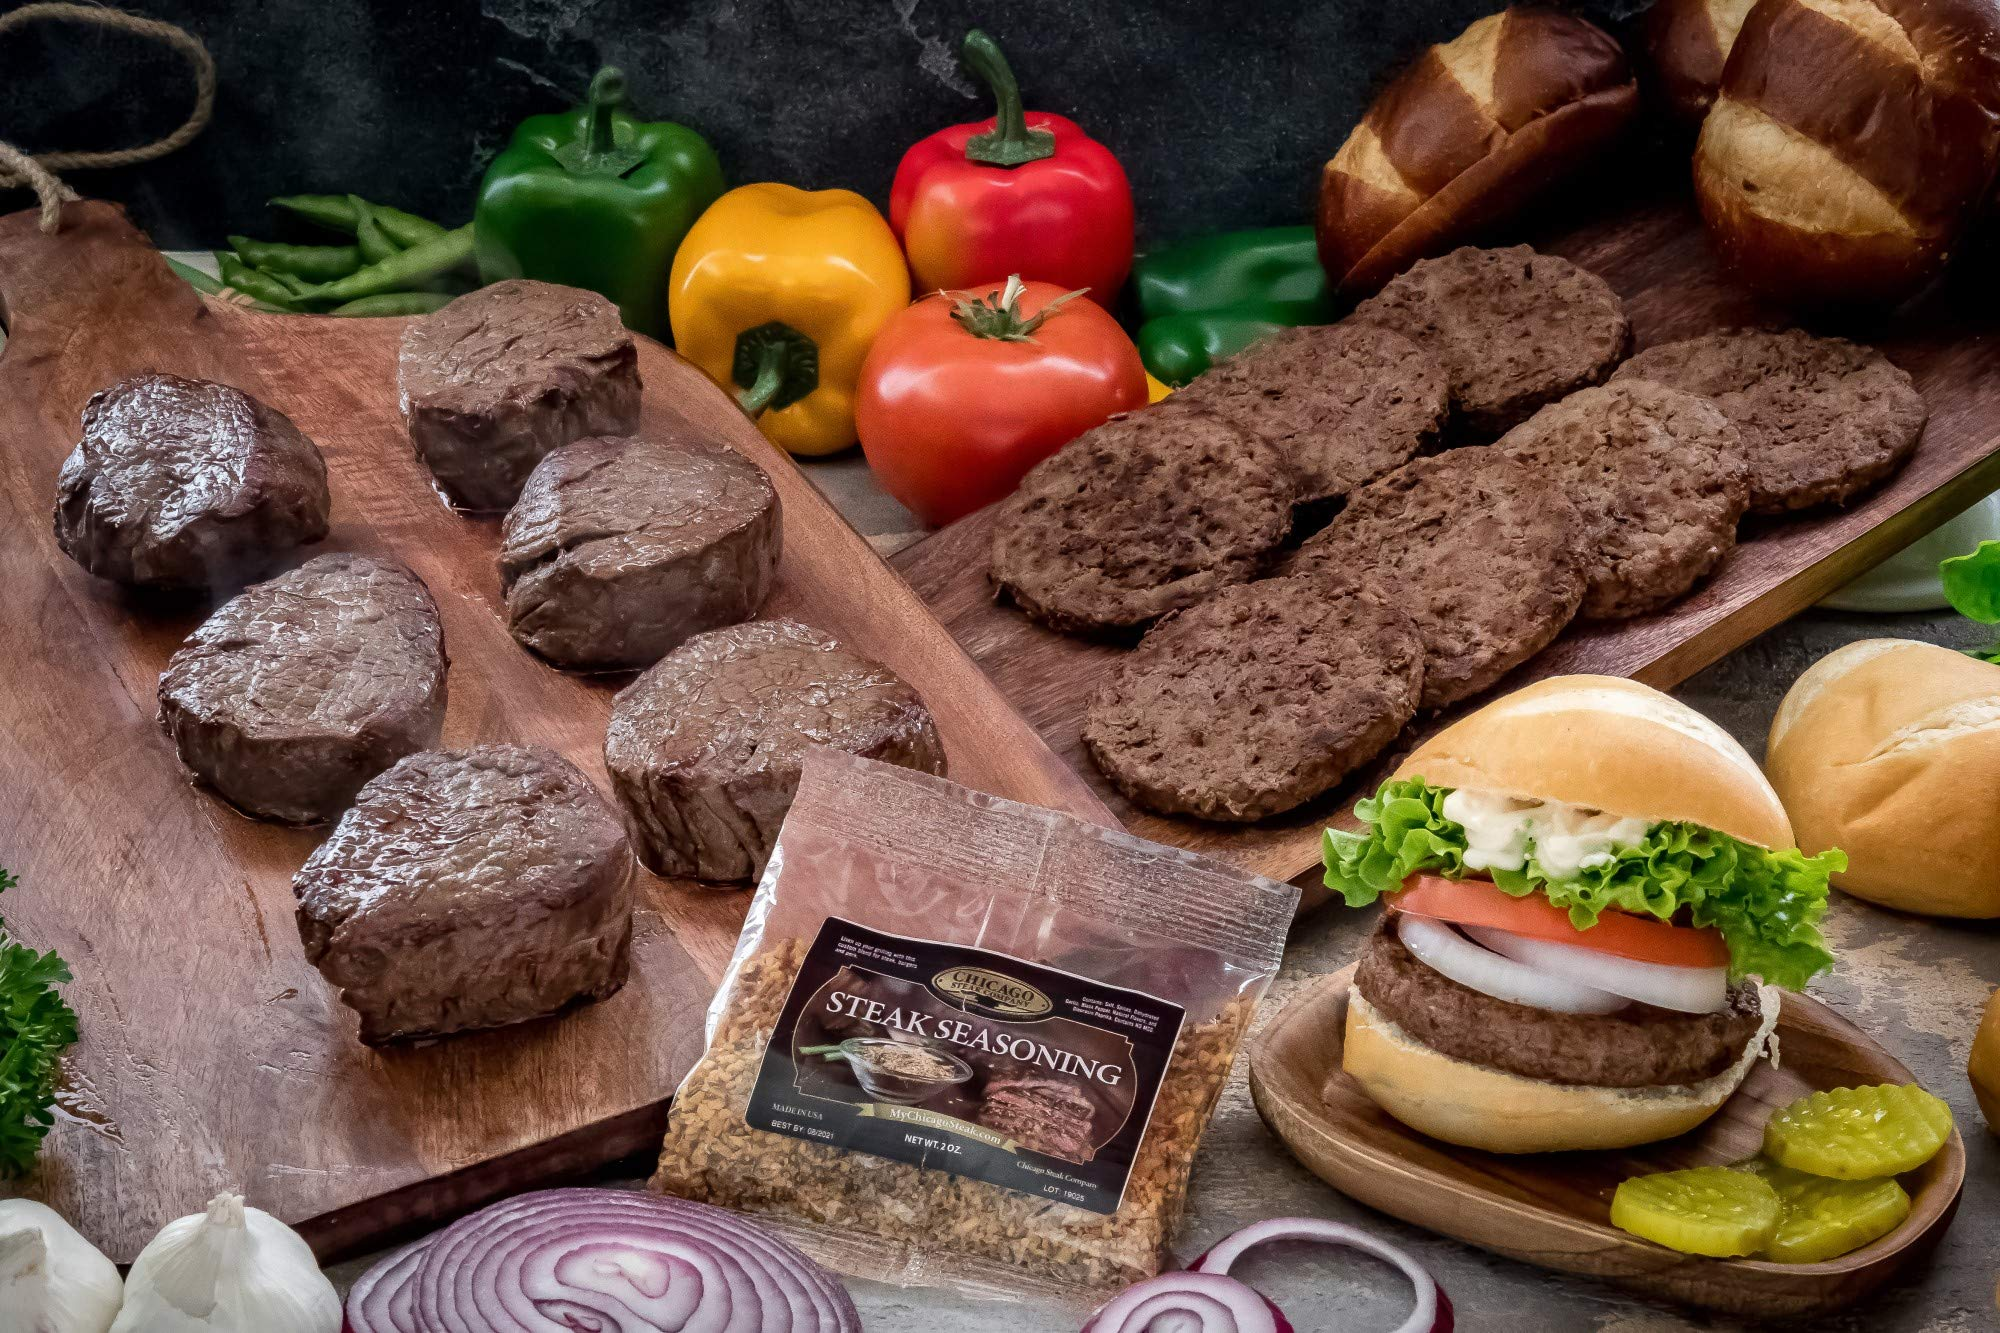 Butcher's Choice Gift Box 6 (6 oz.) Filet Mignons & 8 (4 oz.) Angus Beef Steak Burgers - Wet Aged Filet Mignons and Angus Beef Burgers Gift Set with 1 Pack Steak Seasoning - Home-made Grilled Steak